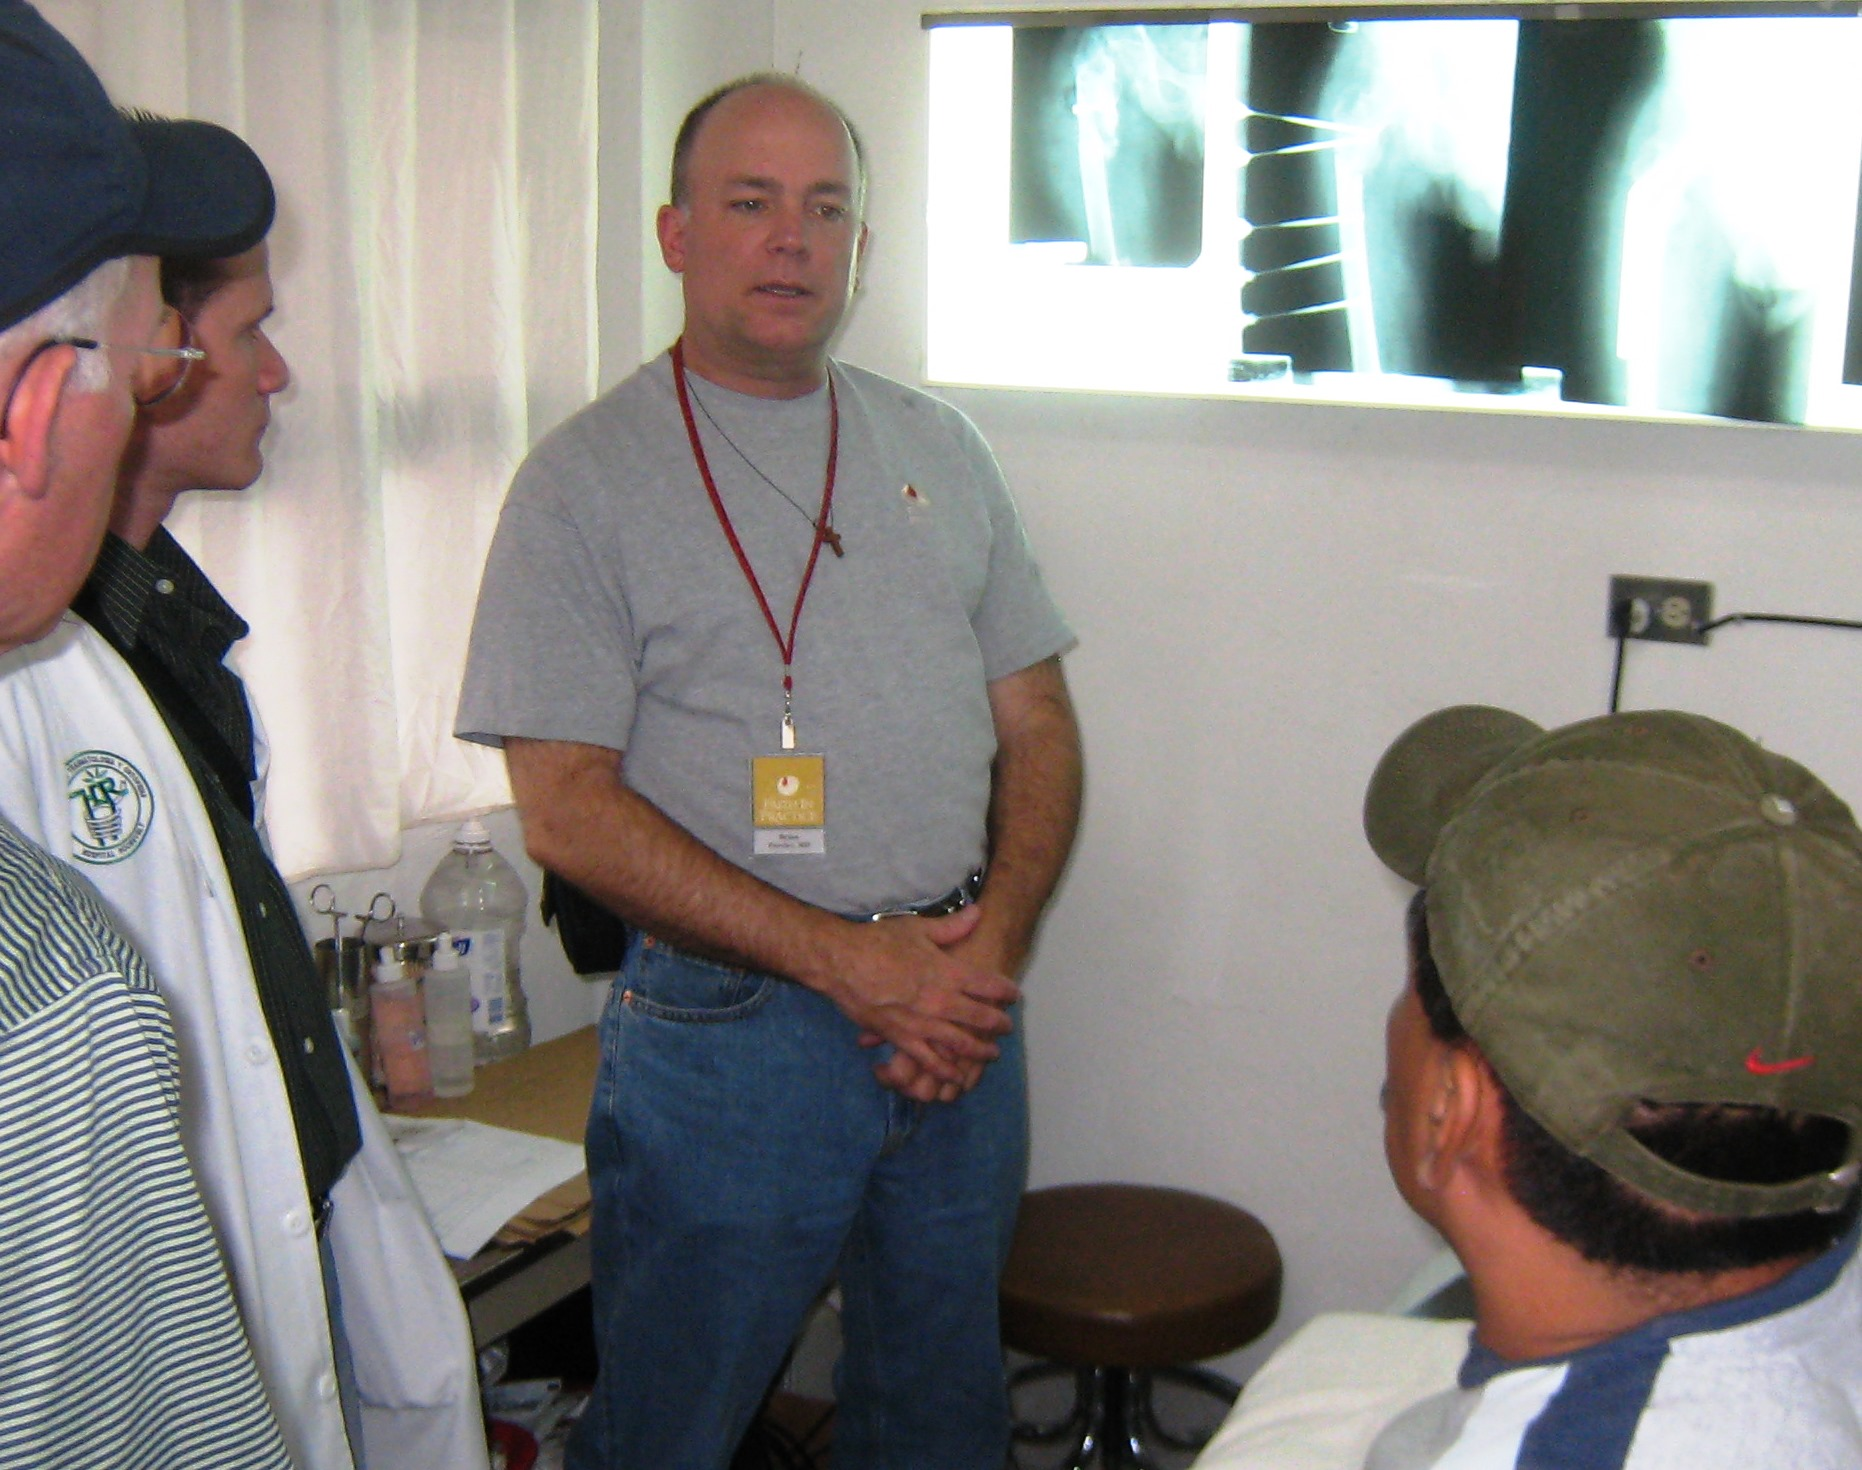 Patient finding solution Guate